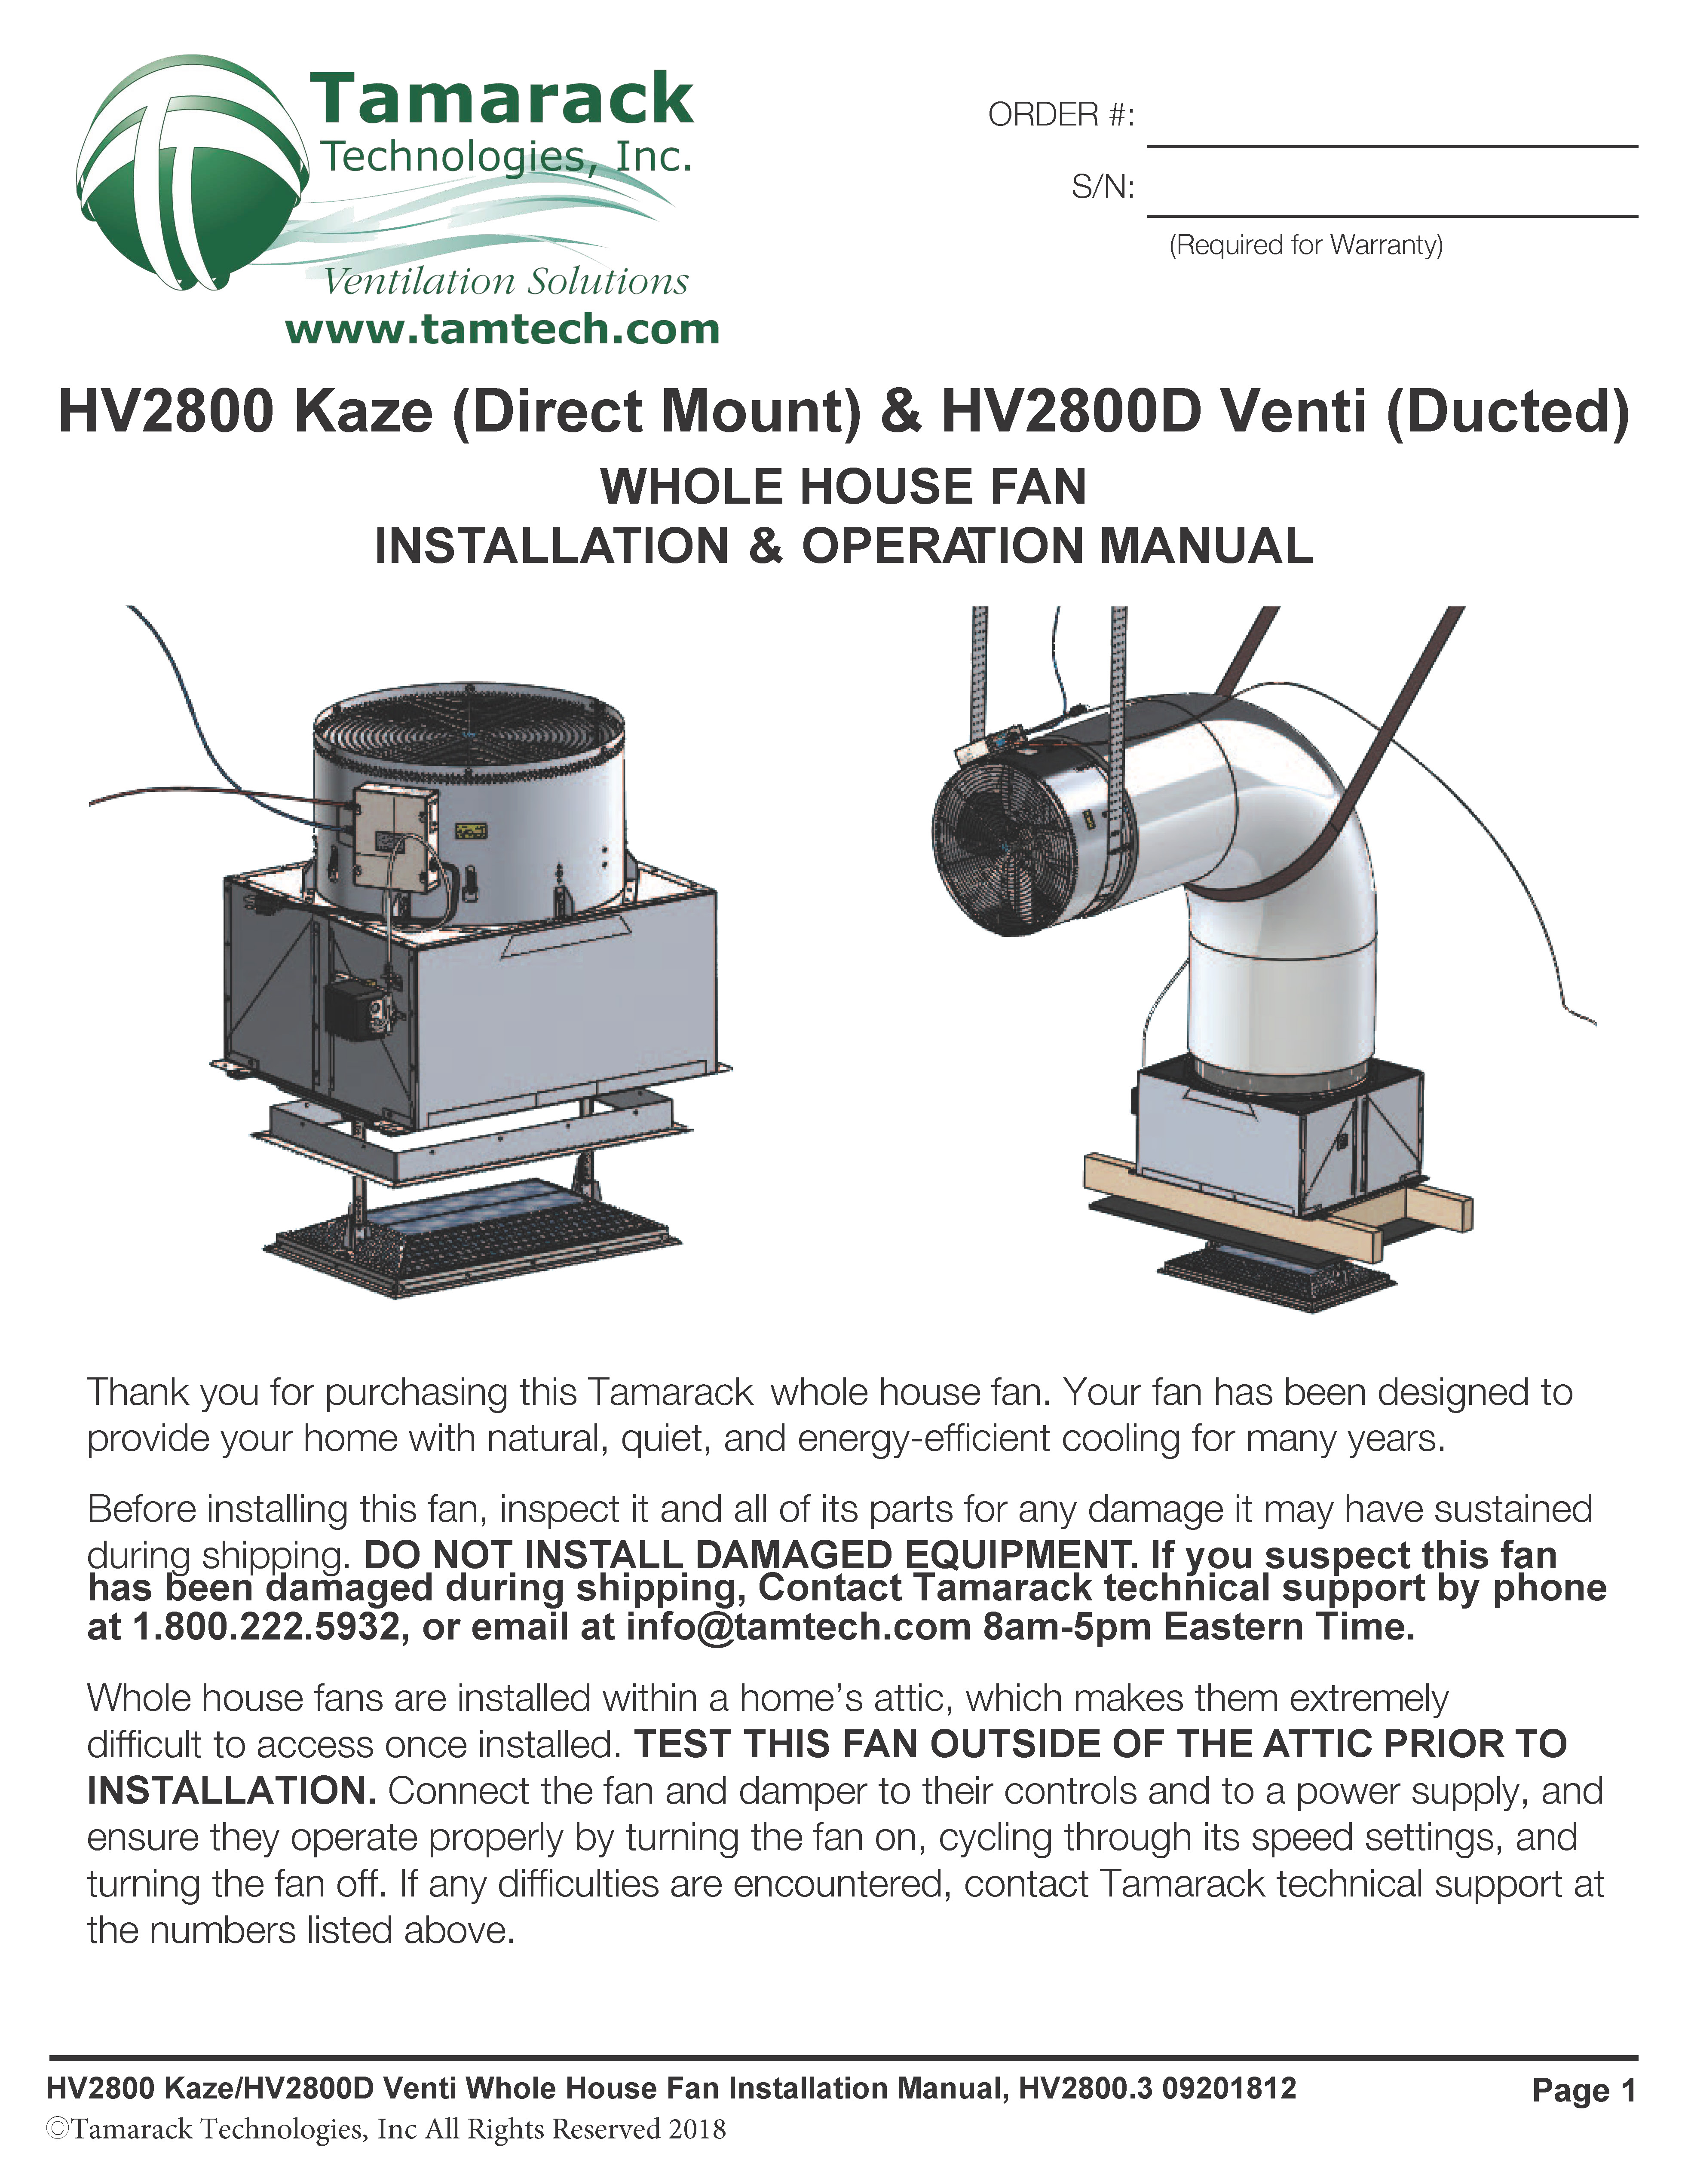 Click Here To The Installation Manual And Operation Guide